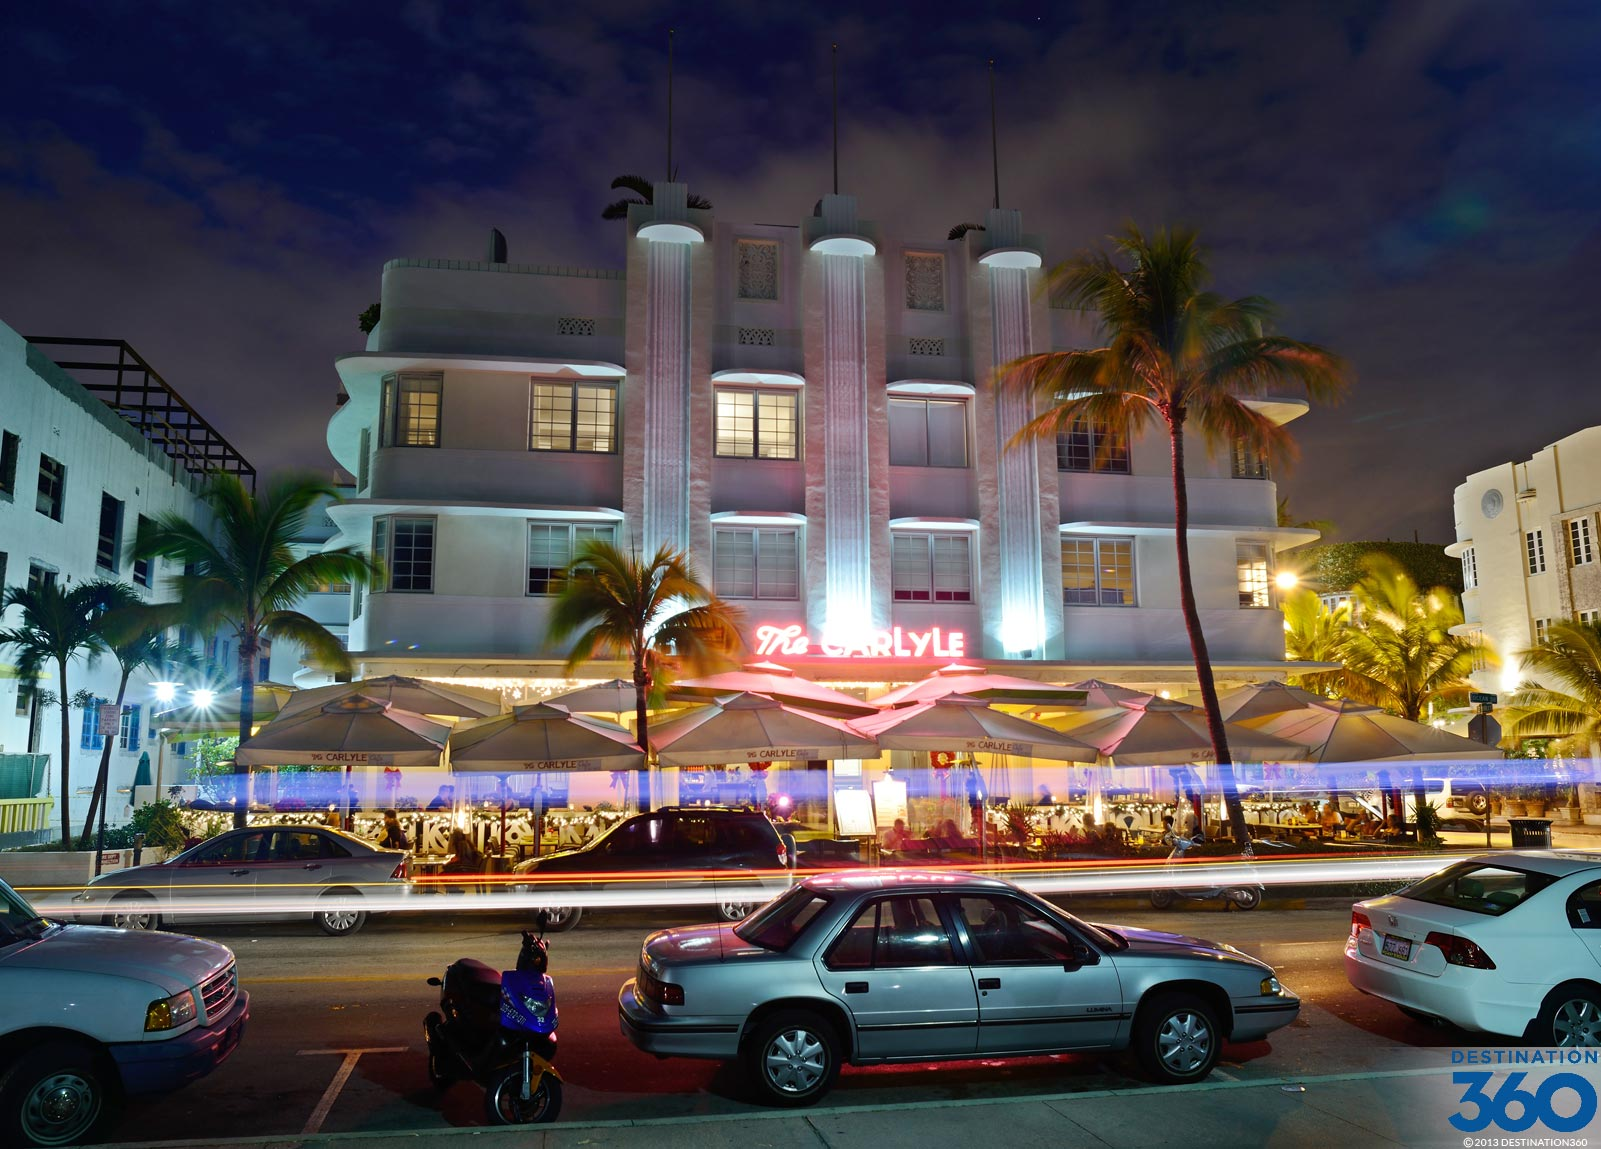 Who Has The Best Deal On Miami Hotels